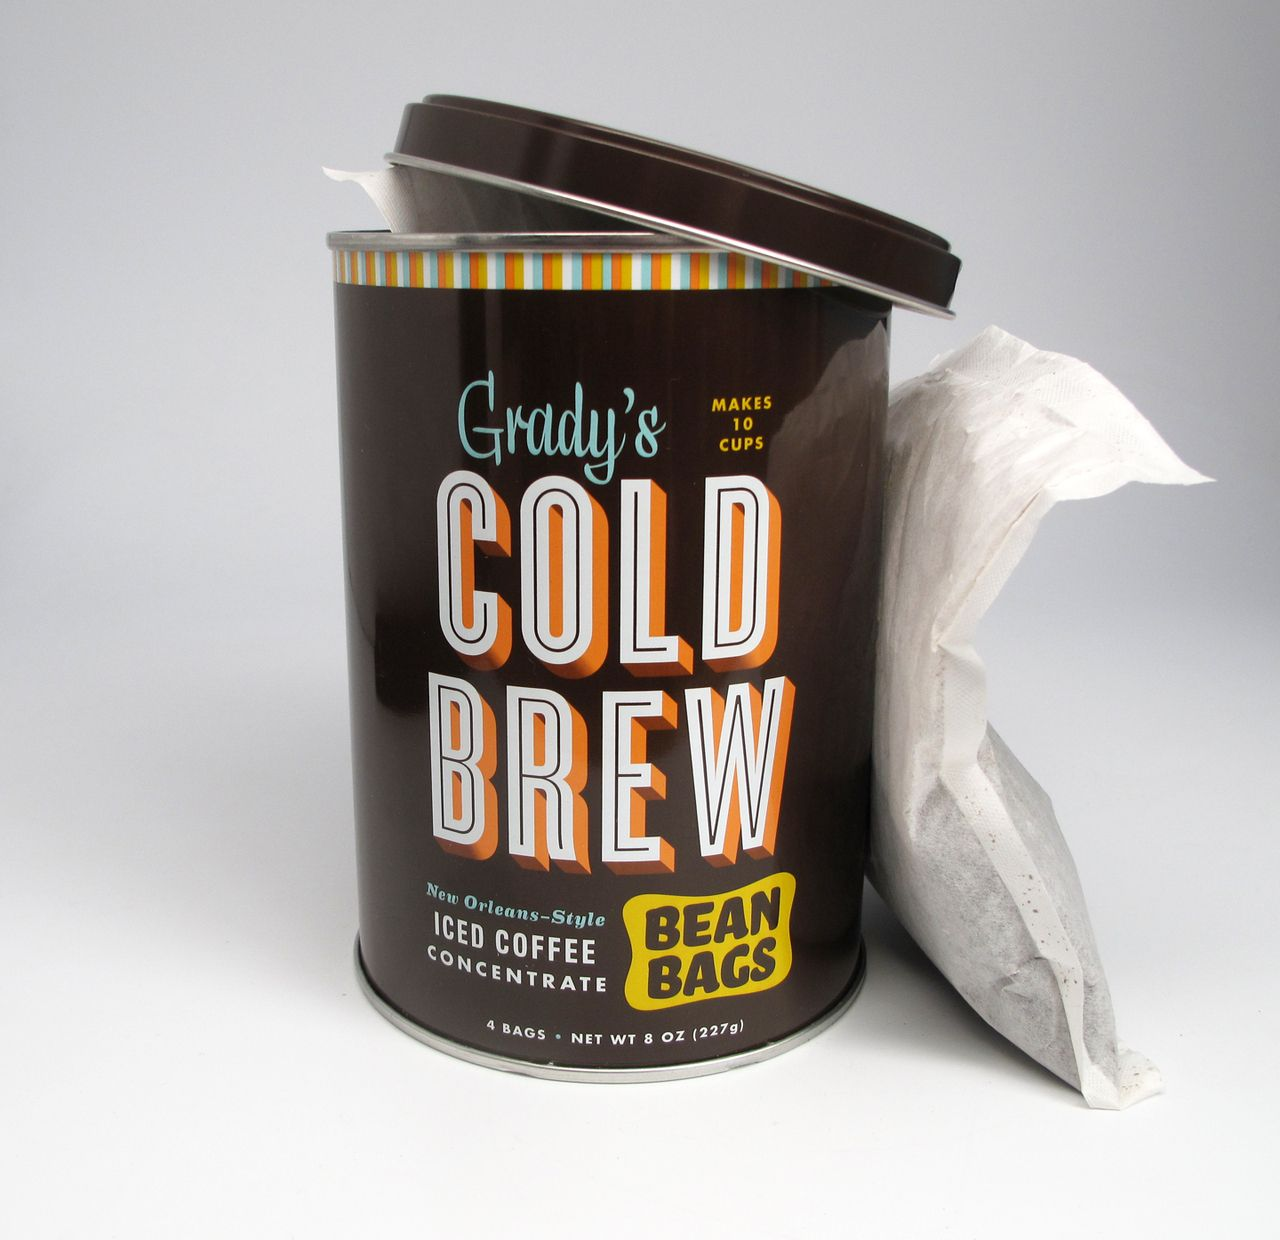 Grady's Cold Brew Bean Bags (With images) Cold brew